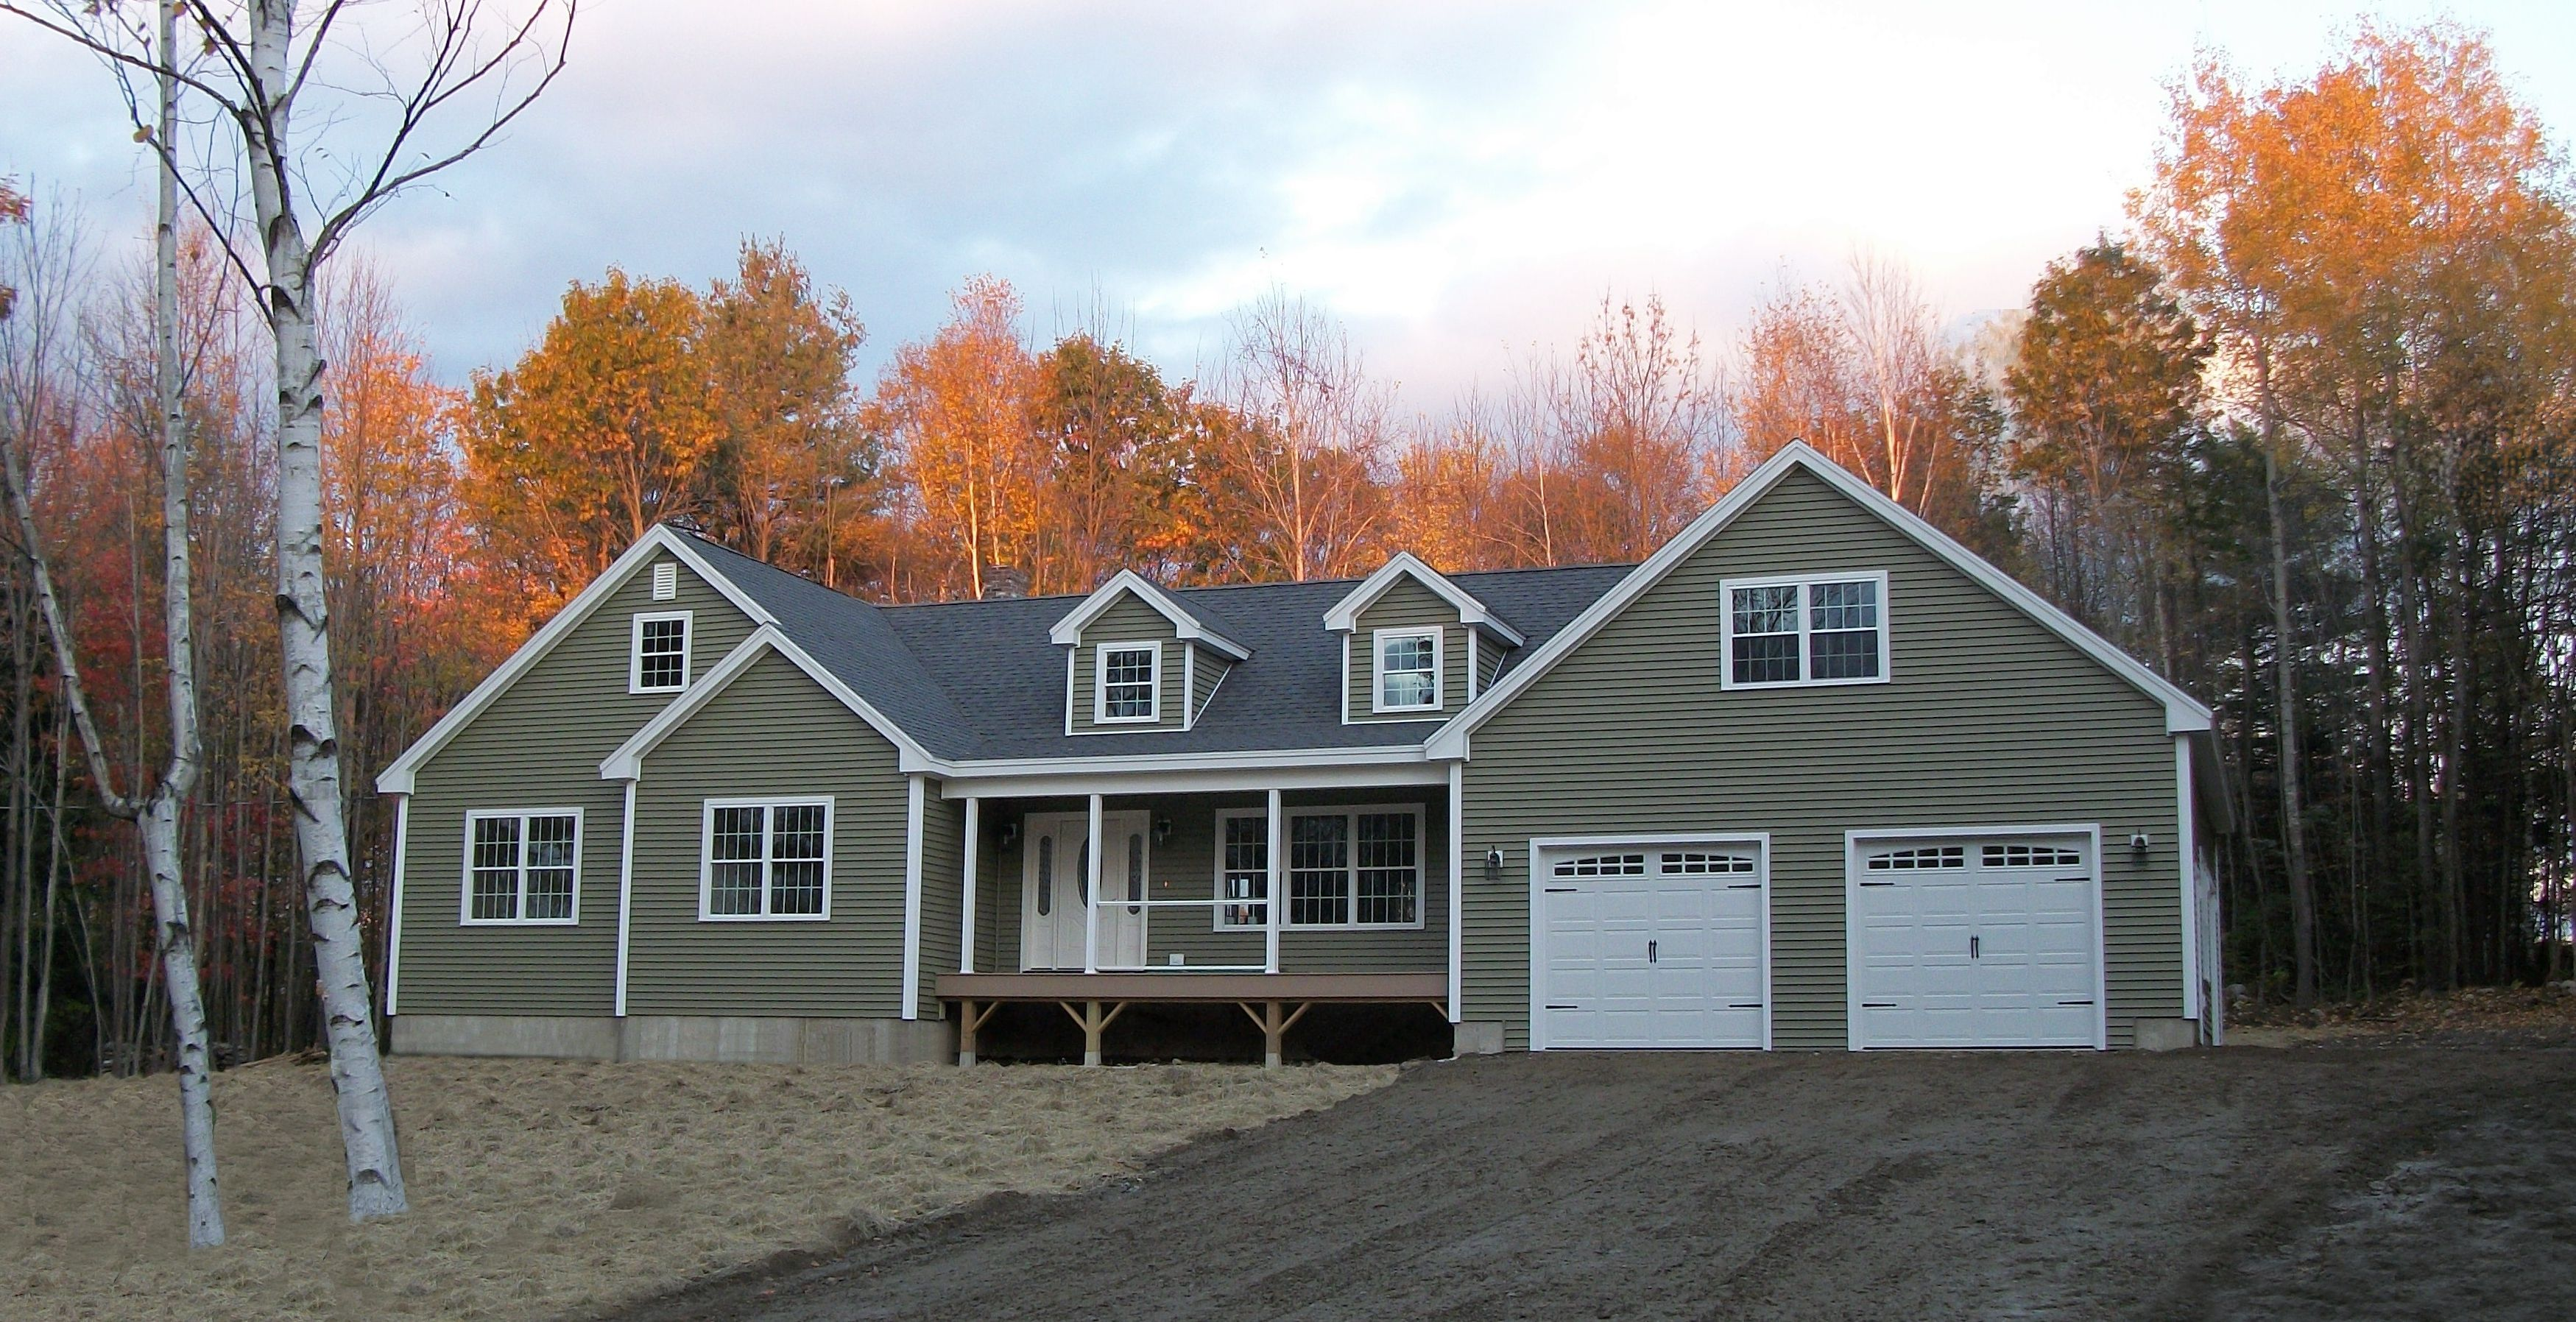 How Much For A Modular Home model modular homes for sale in michigan | house style | pinterest